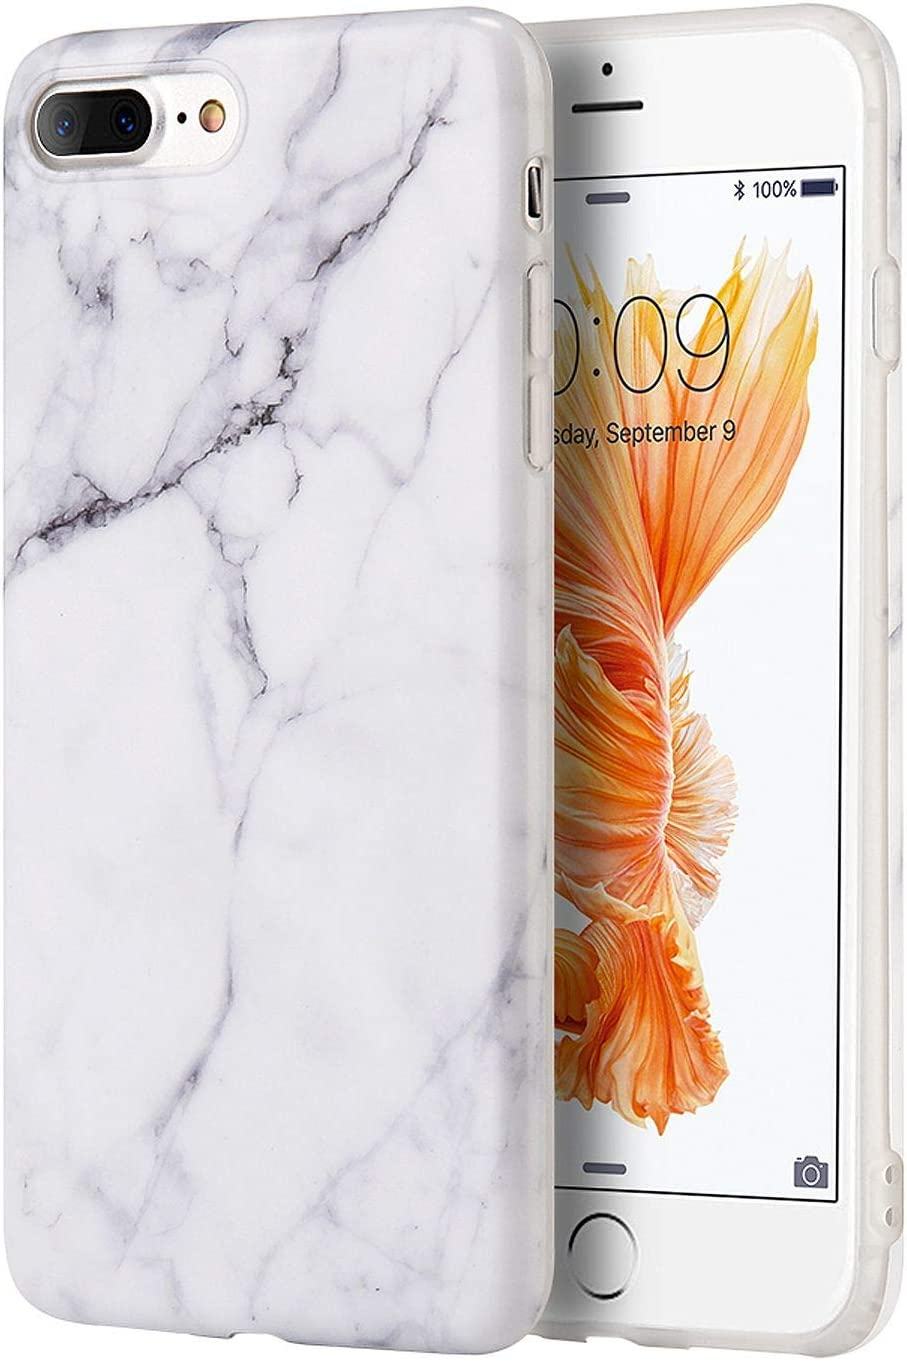 "Insten [Marble Design] Ultra Slim Case, Lightwight Anti Slip Soft TPU Rubber Candy Skin Gel Silicone, Protective Phone Case Cover Compatible with Apple iPhone 8 Plus/7 Plus(5.5""), White"